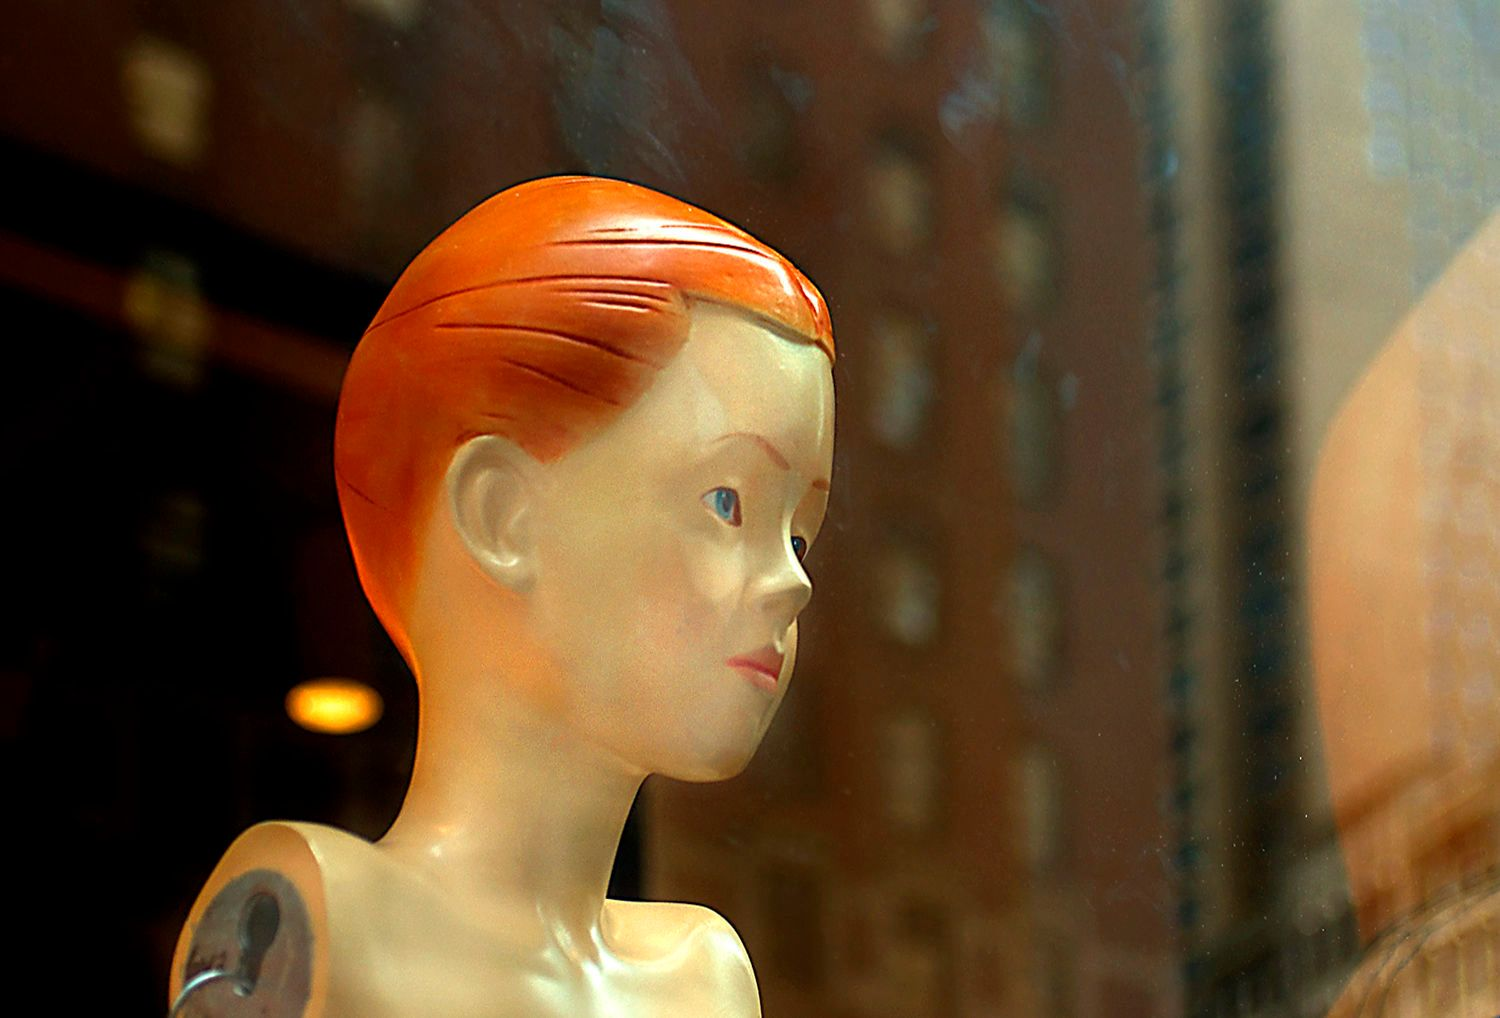 Boy Mannequin with Orange Hair